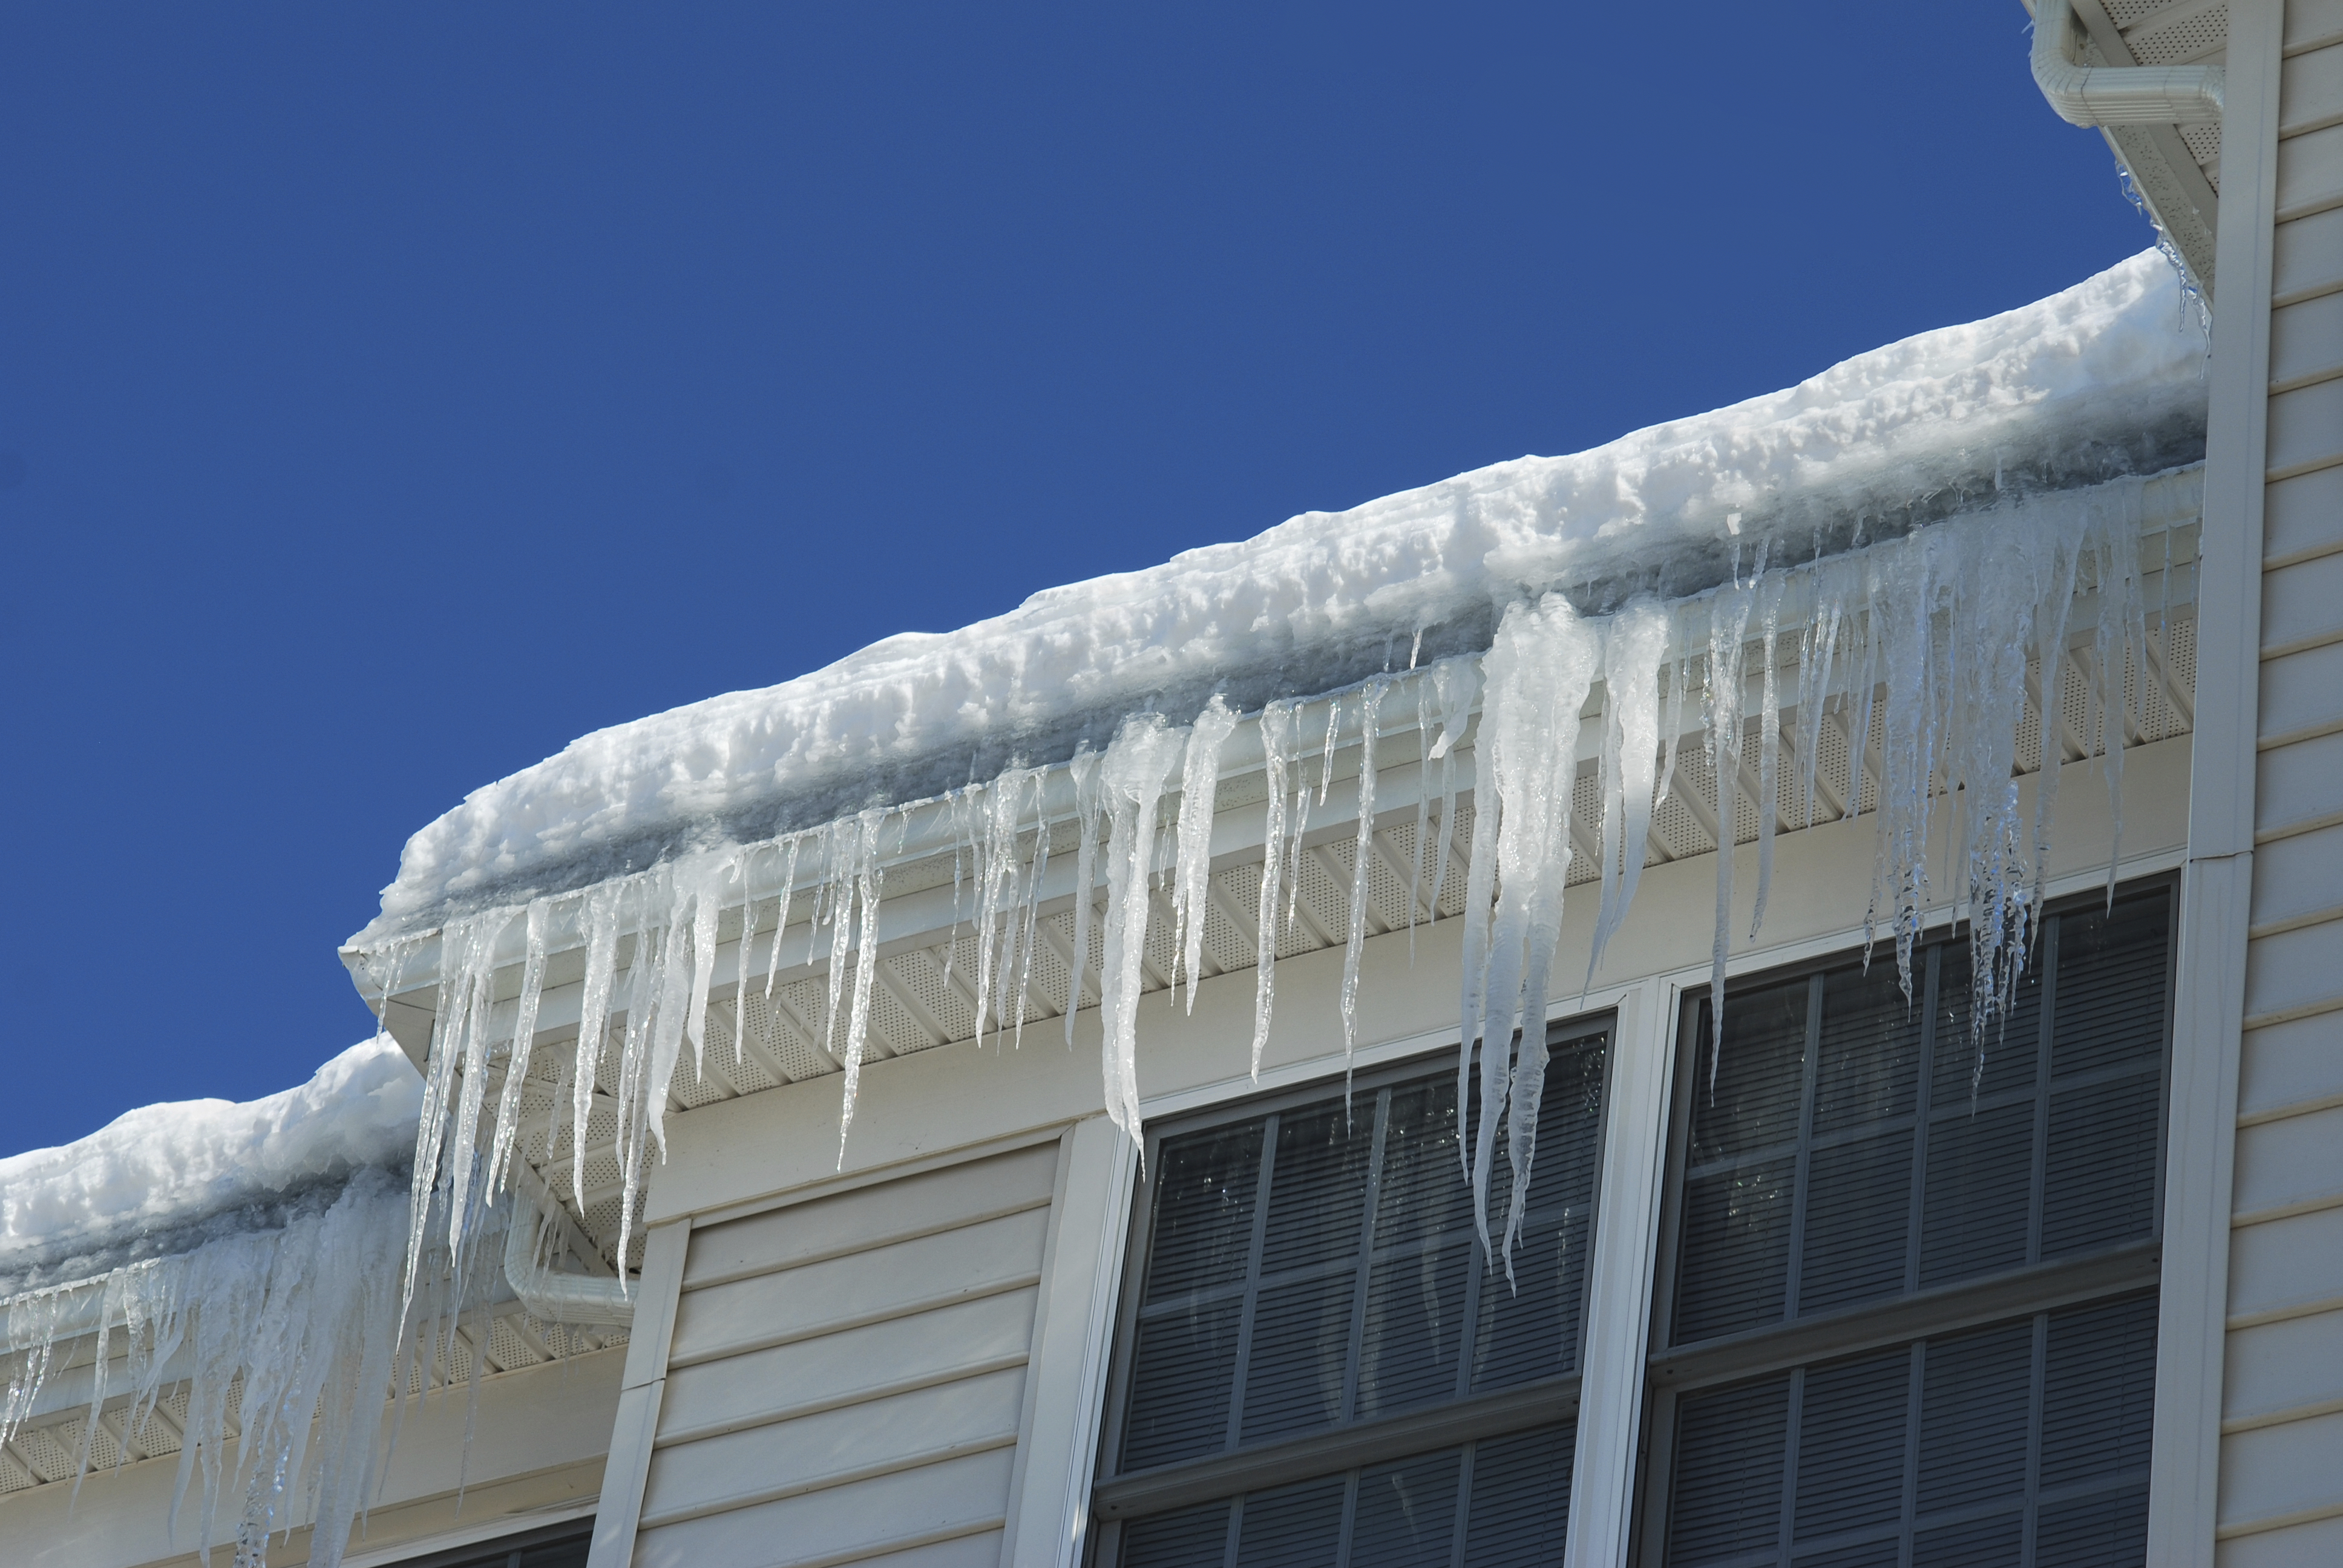 Ice Dams The Bane Of New England Winter Central